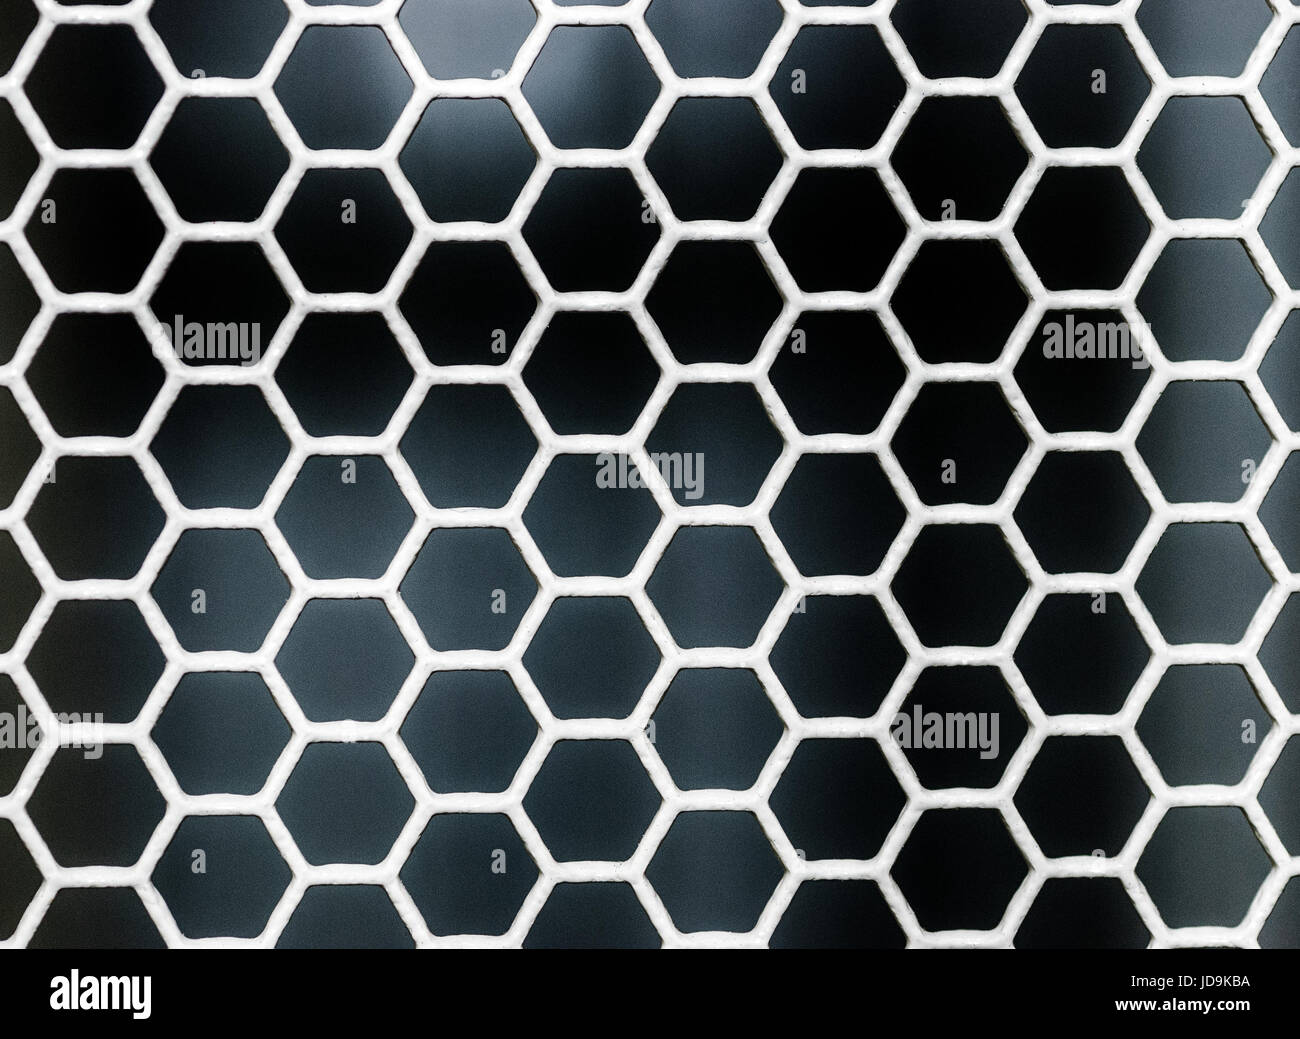 hexagon grid background texture pattern - Stock Image